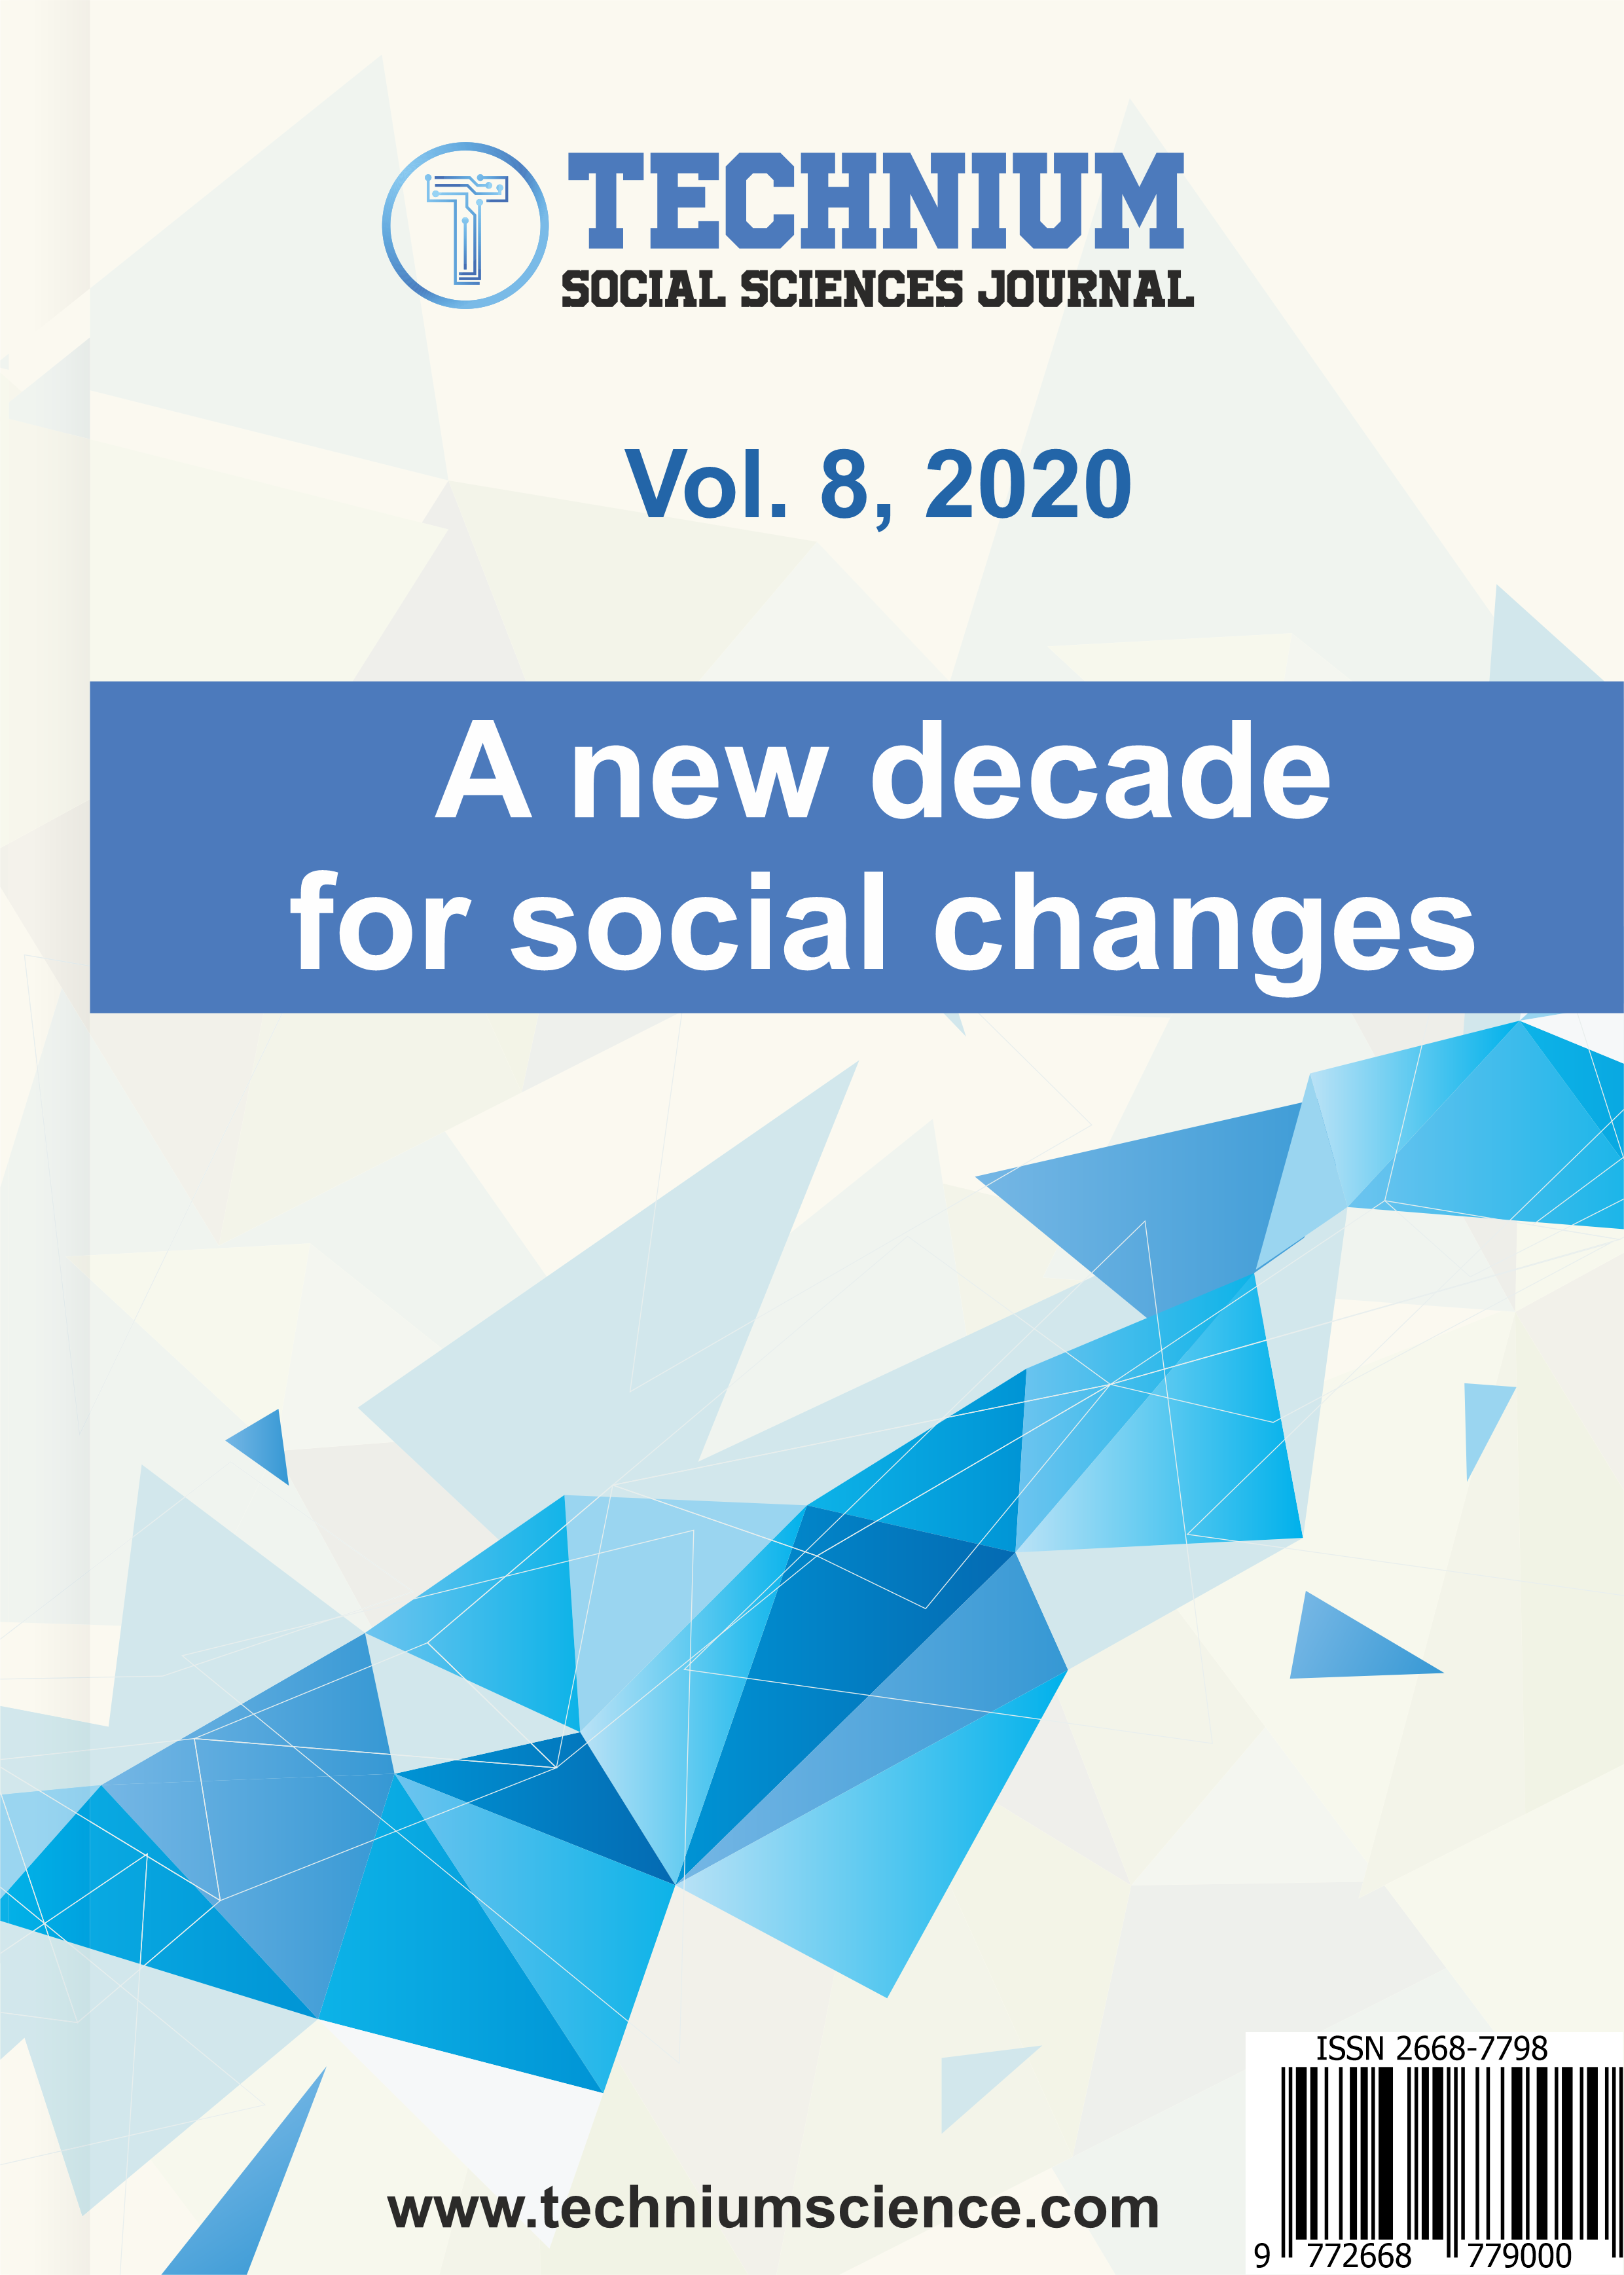 View Vol. 8 (2020): A new decade for social changes